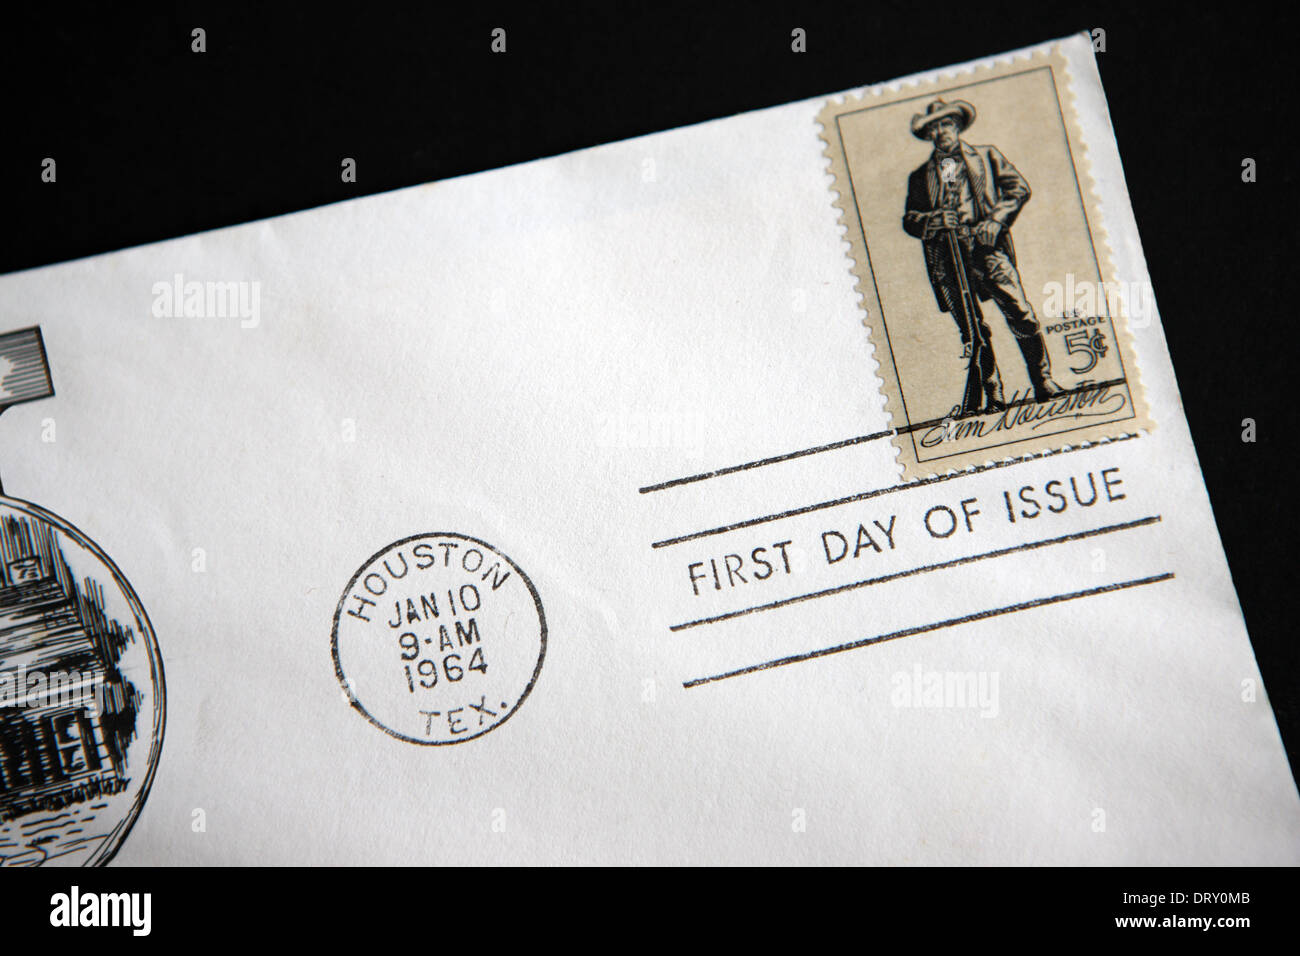 First Day issue of a Sam Houston stamp on an envelope dated January 10 1964 from Houston Texas USA - Stock Image